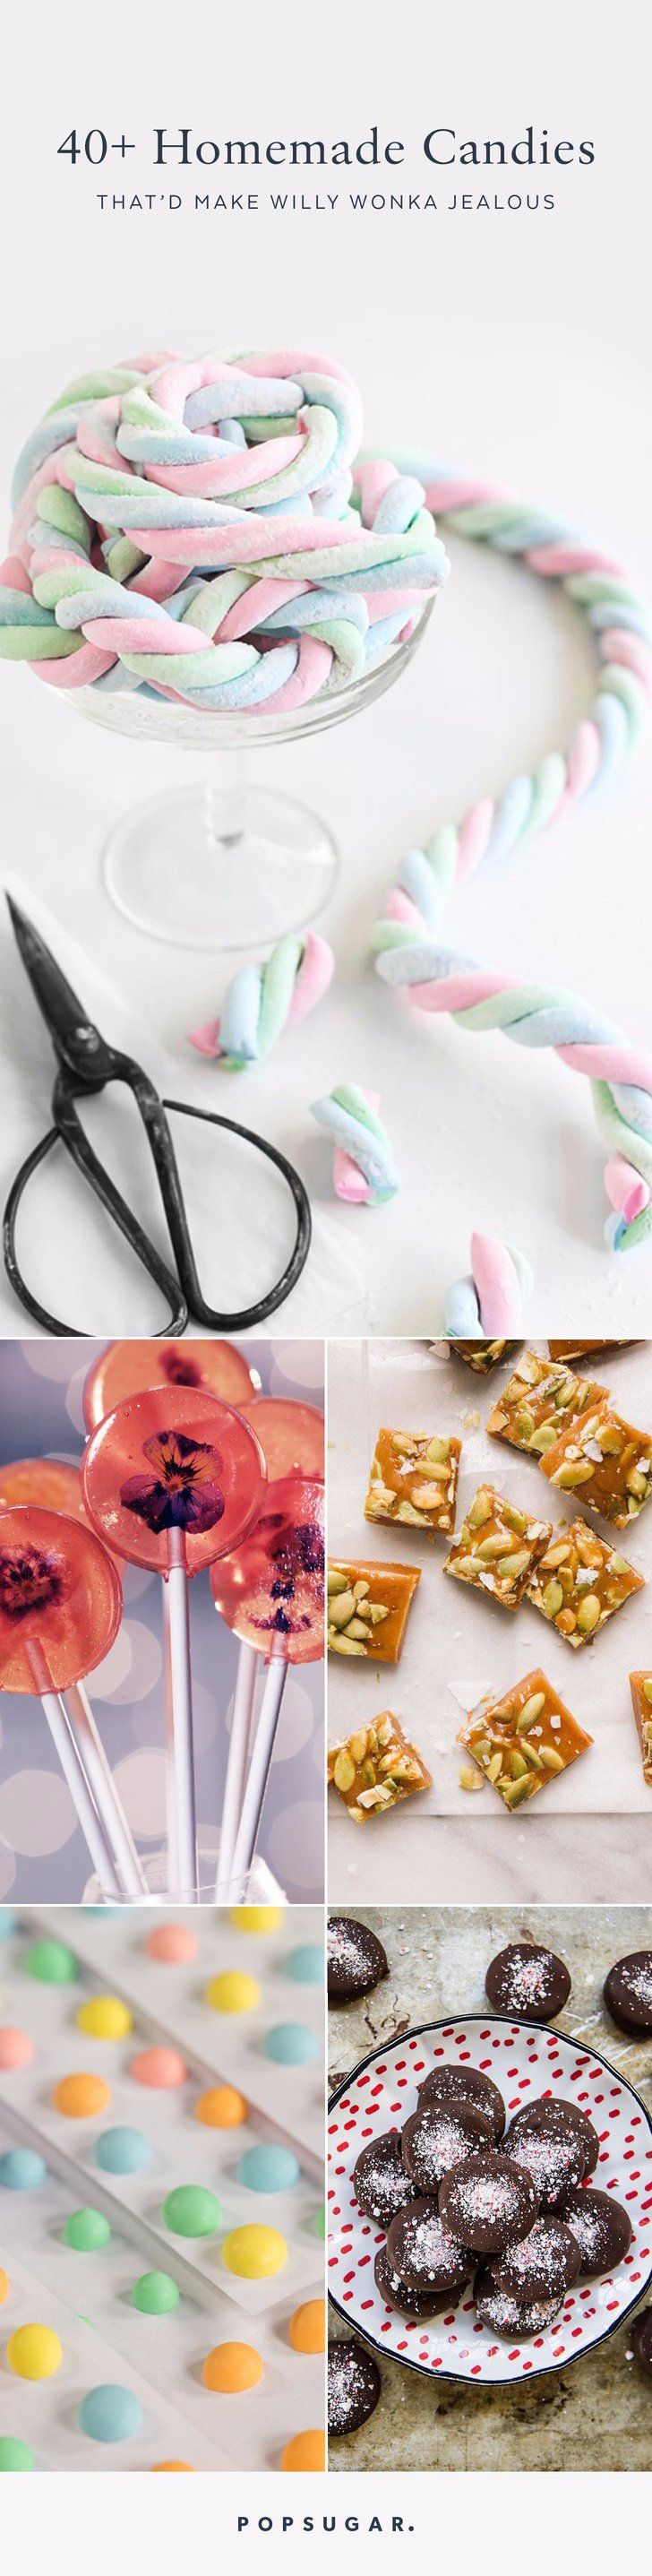 40+ Homemade Candies That'd Make Willy Wonka Jealous August 31, 2017 by NICOLE PERRY superscrumptious homemade candy recipes